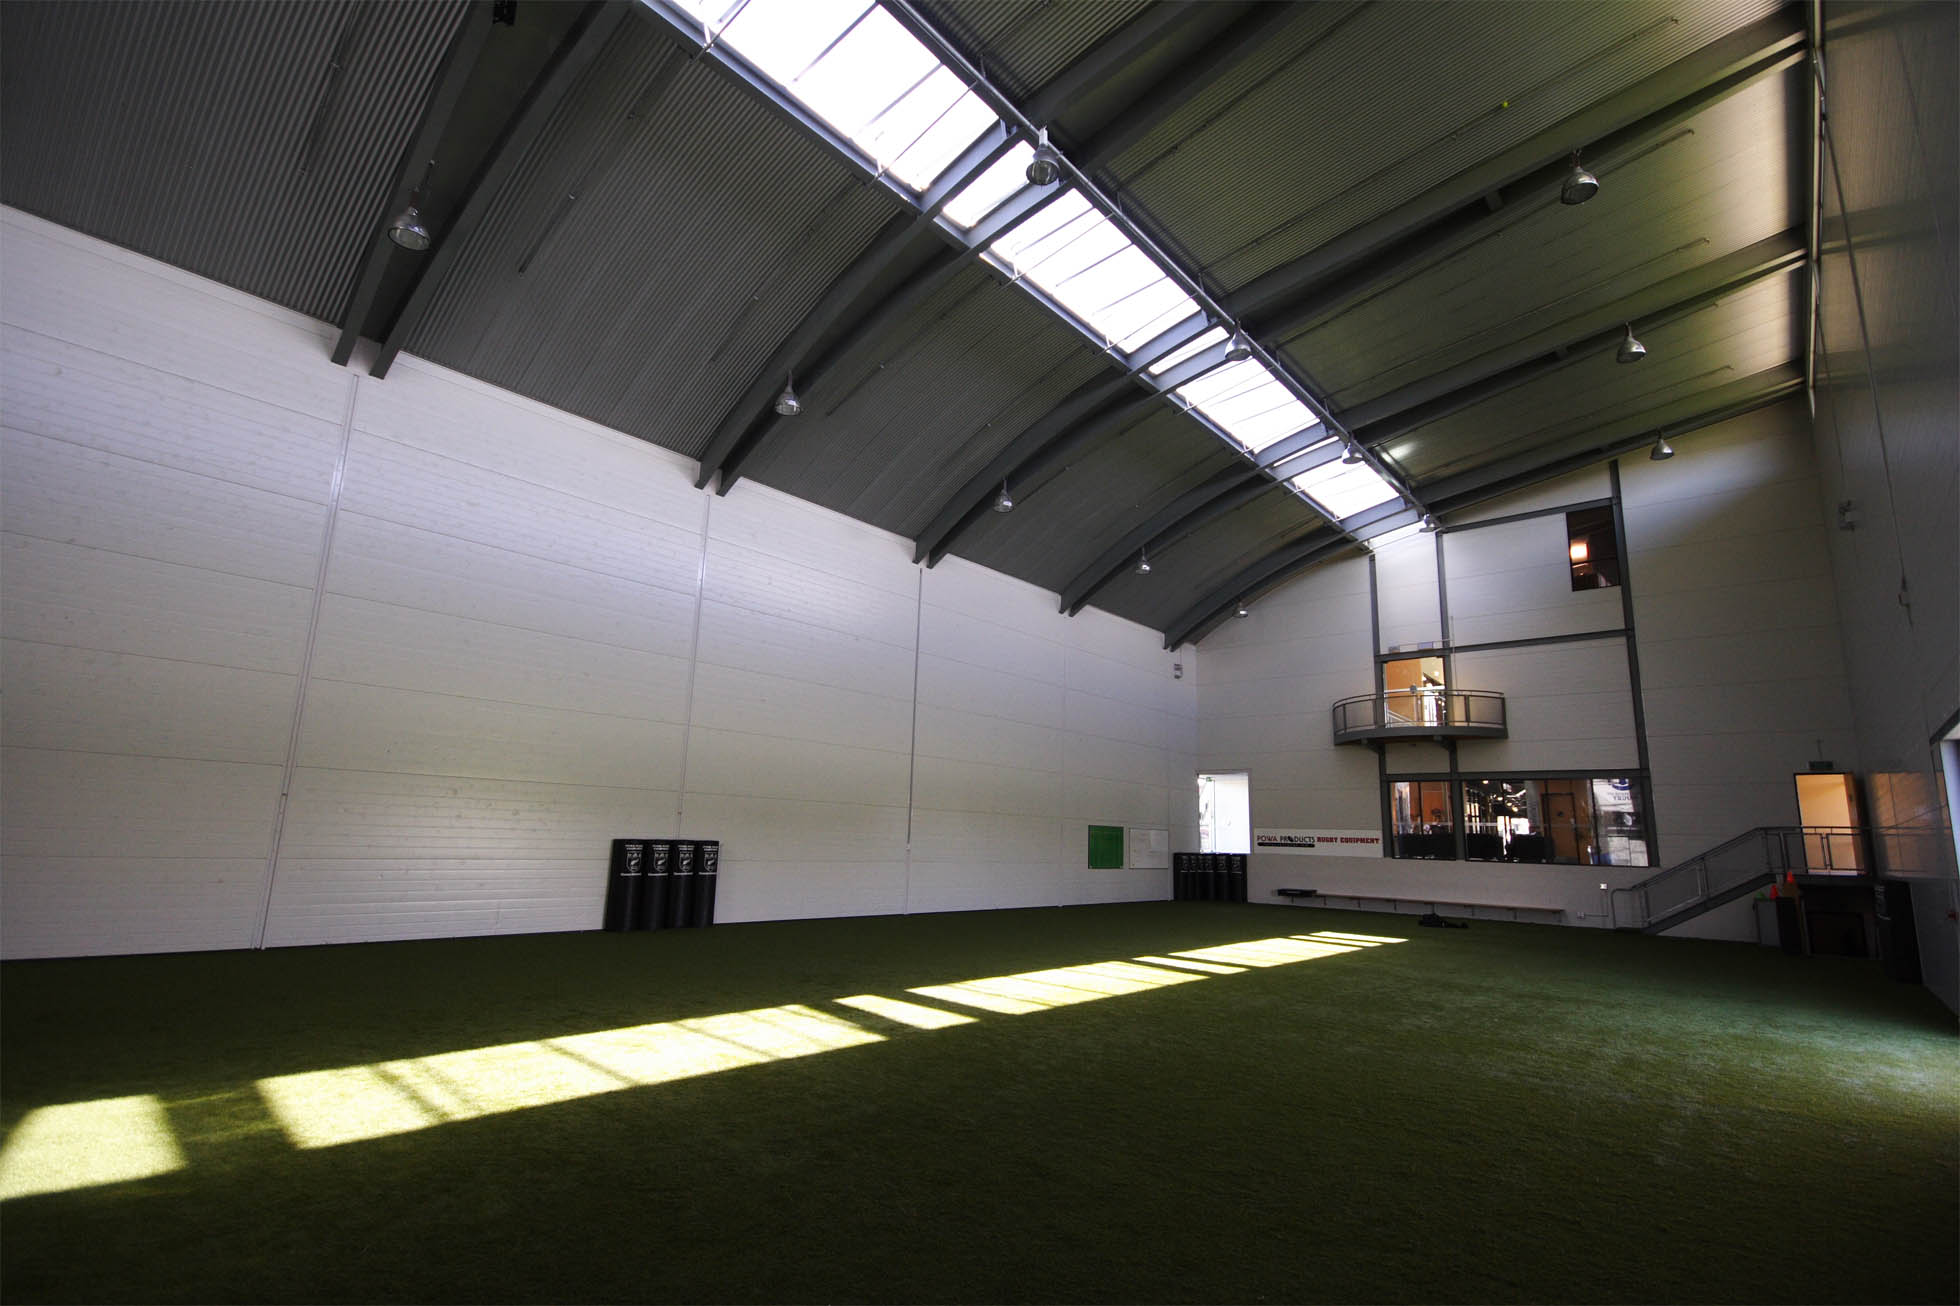 The turf-lined green room at the Massey Sport & Rugby Institute allows practice to take place, regardless of the weather